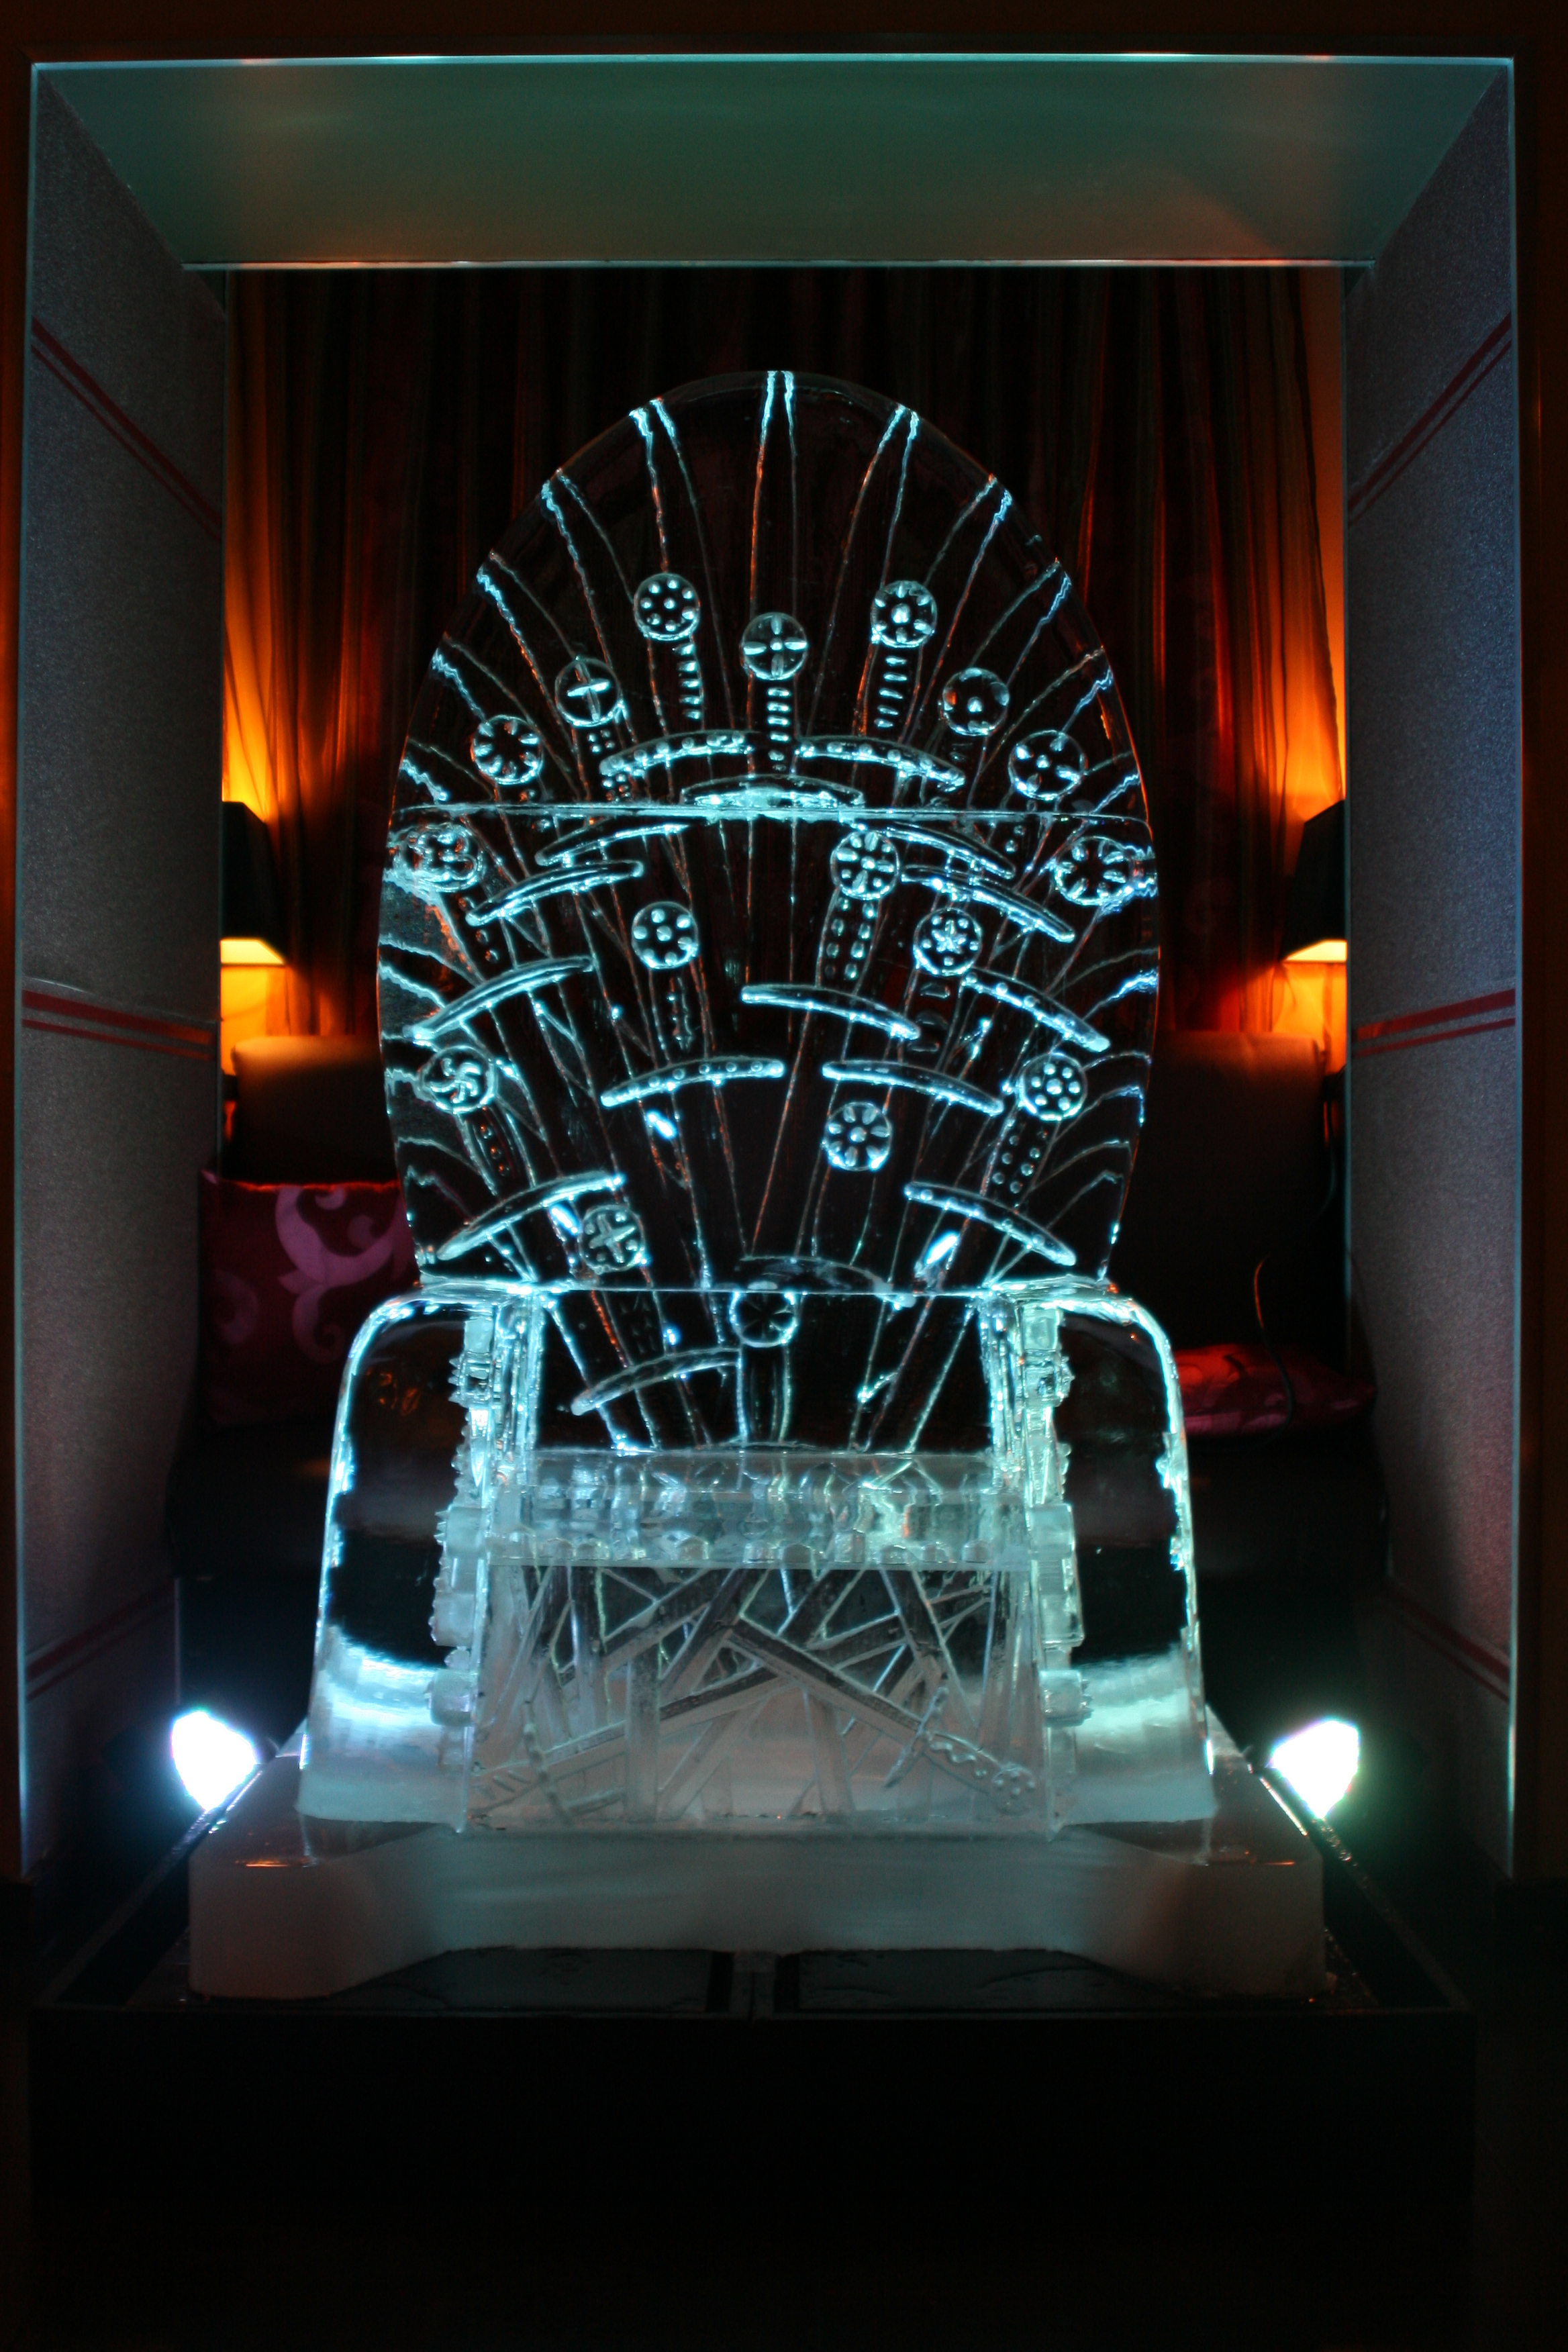 Game of Thrones Ice Sculpture